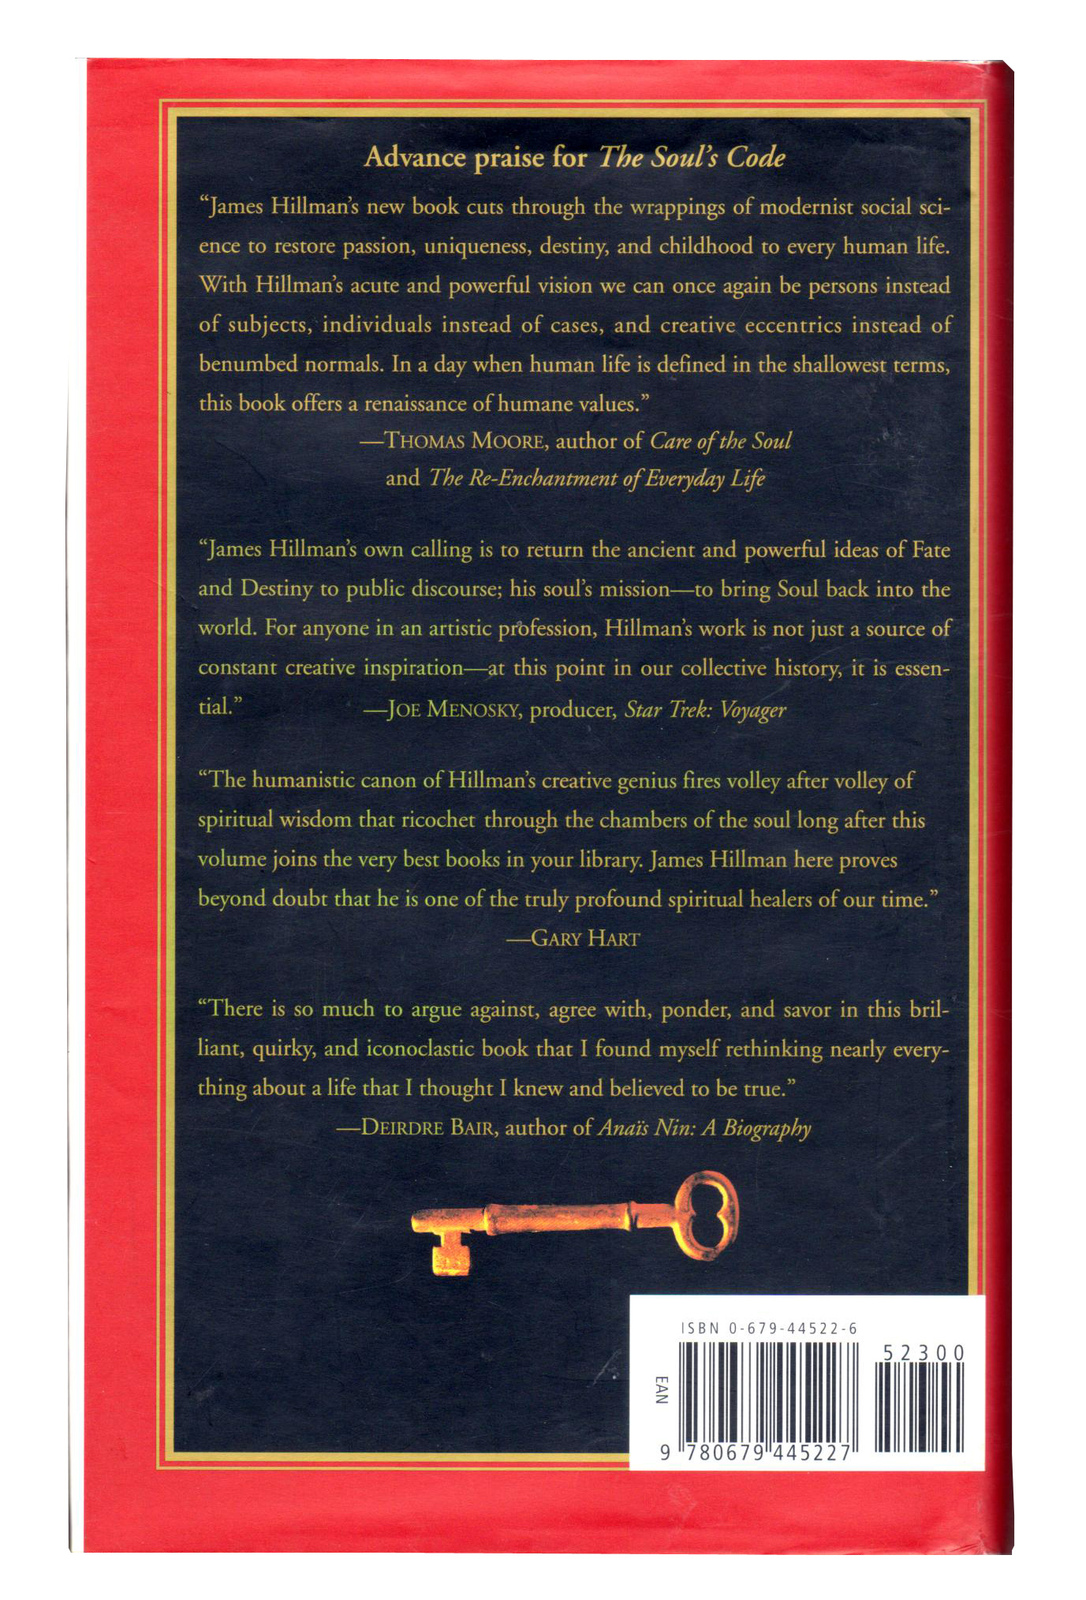 The Soul's Code: In Search of Character and Calling. James Hillman (Hardcover)